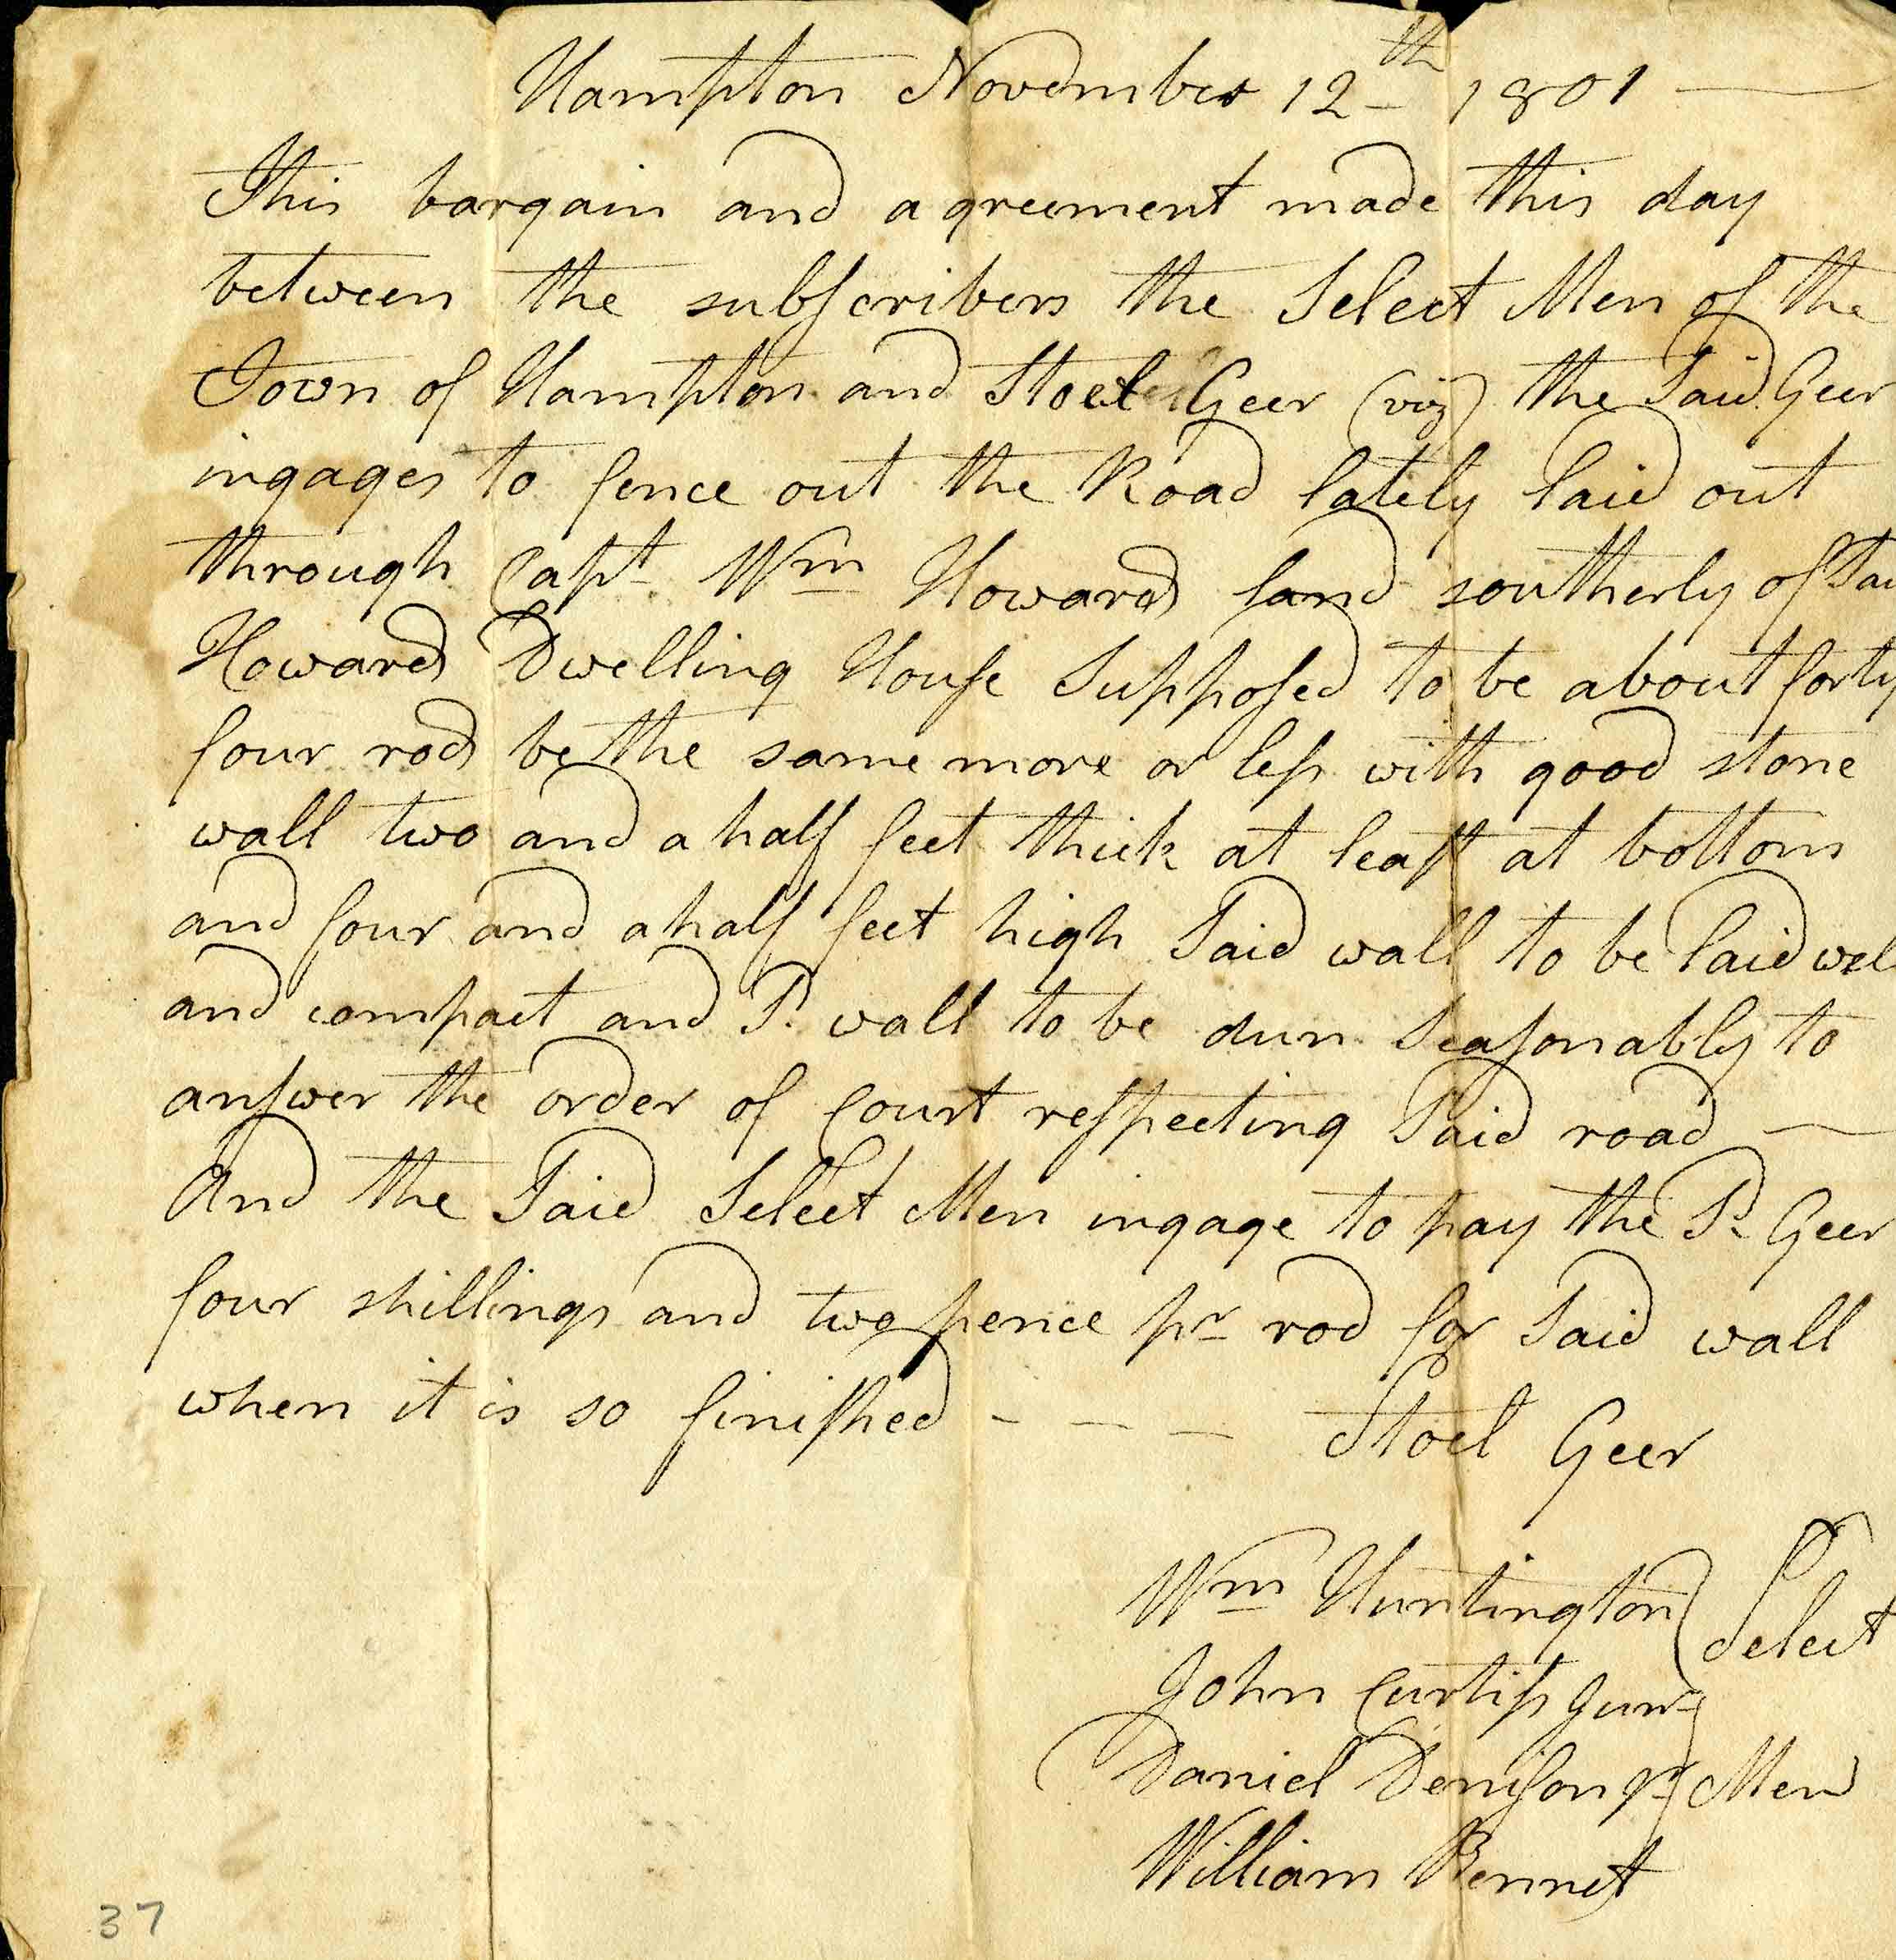 Official letter from Hampton, Connecticut, from 1801 discussing the construction of a new road. From the Hampton Antiquarian and Historical Society Collection